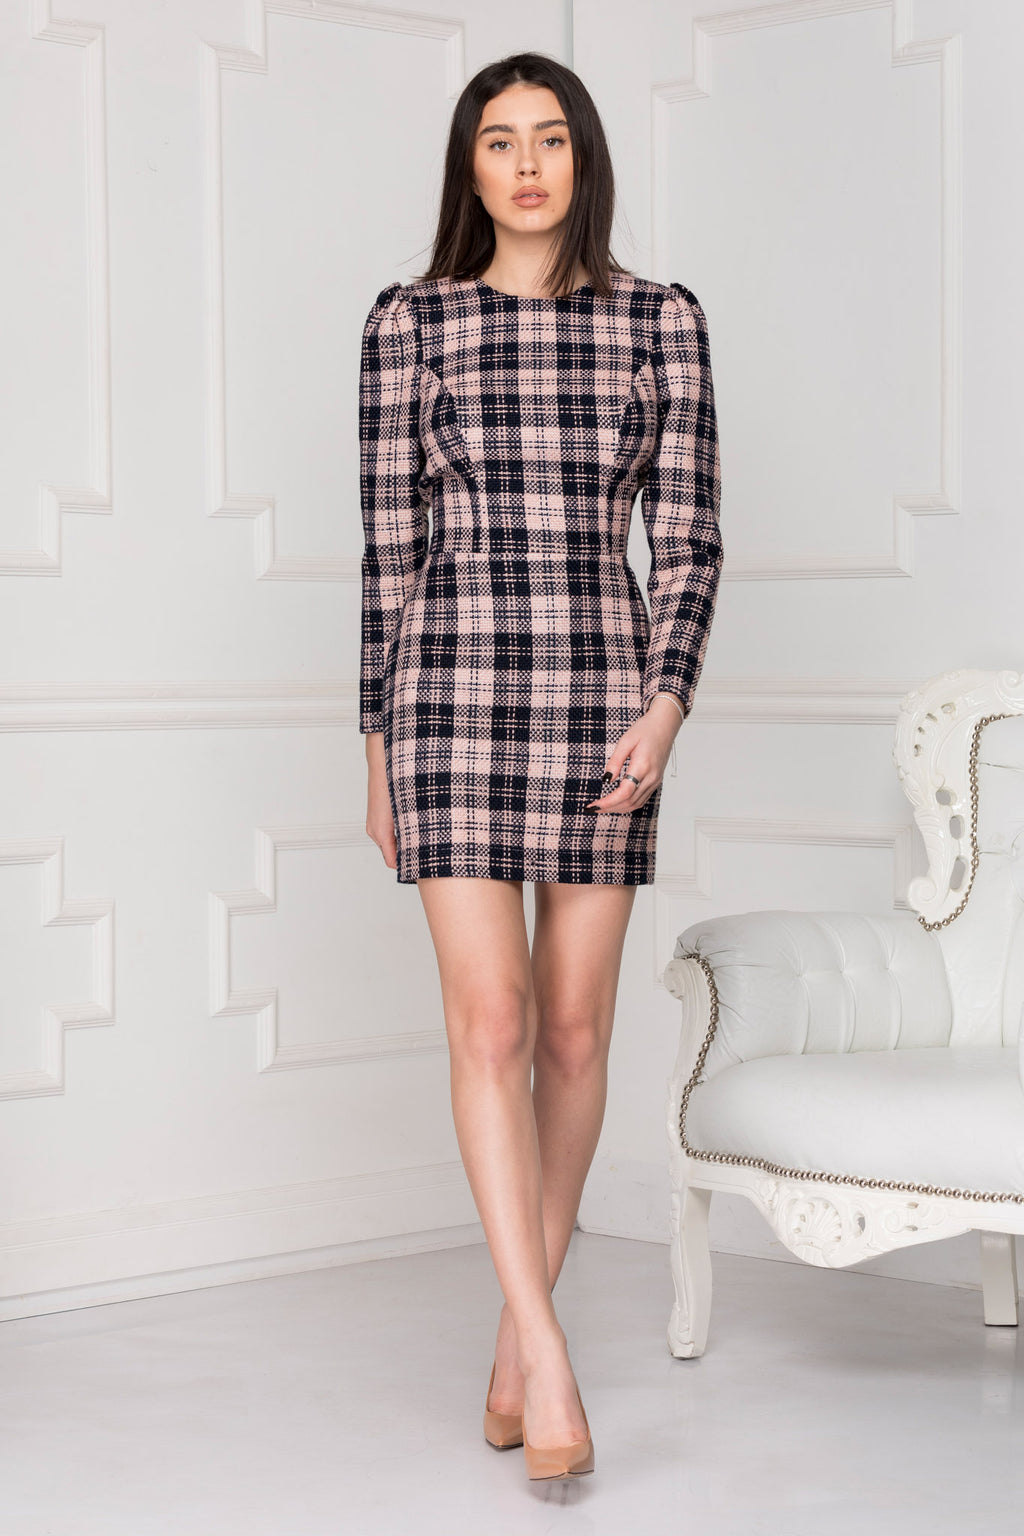 Nude Plaid Dress office look.